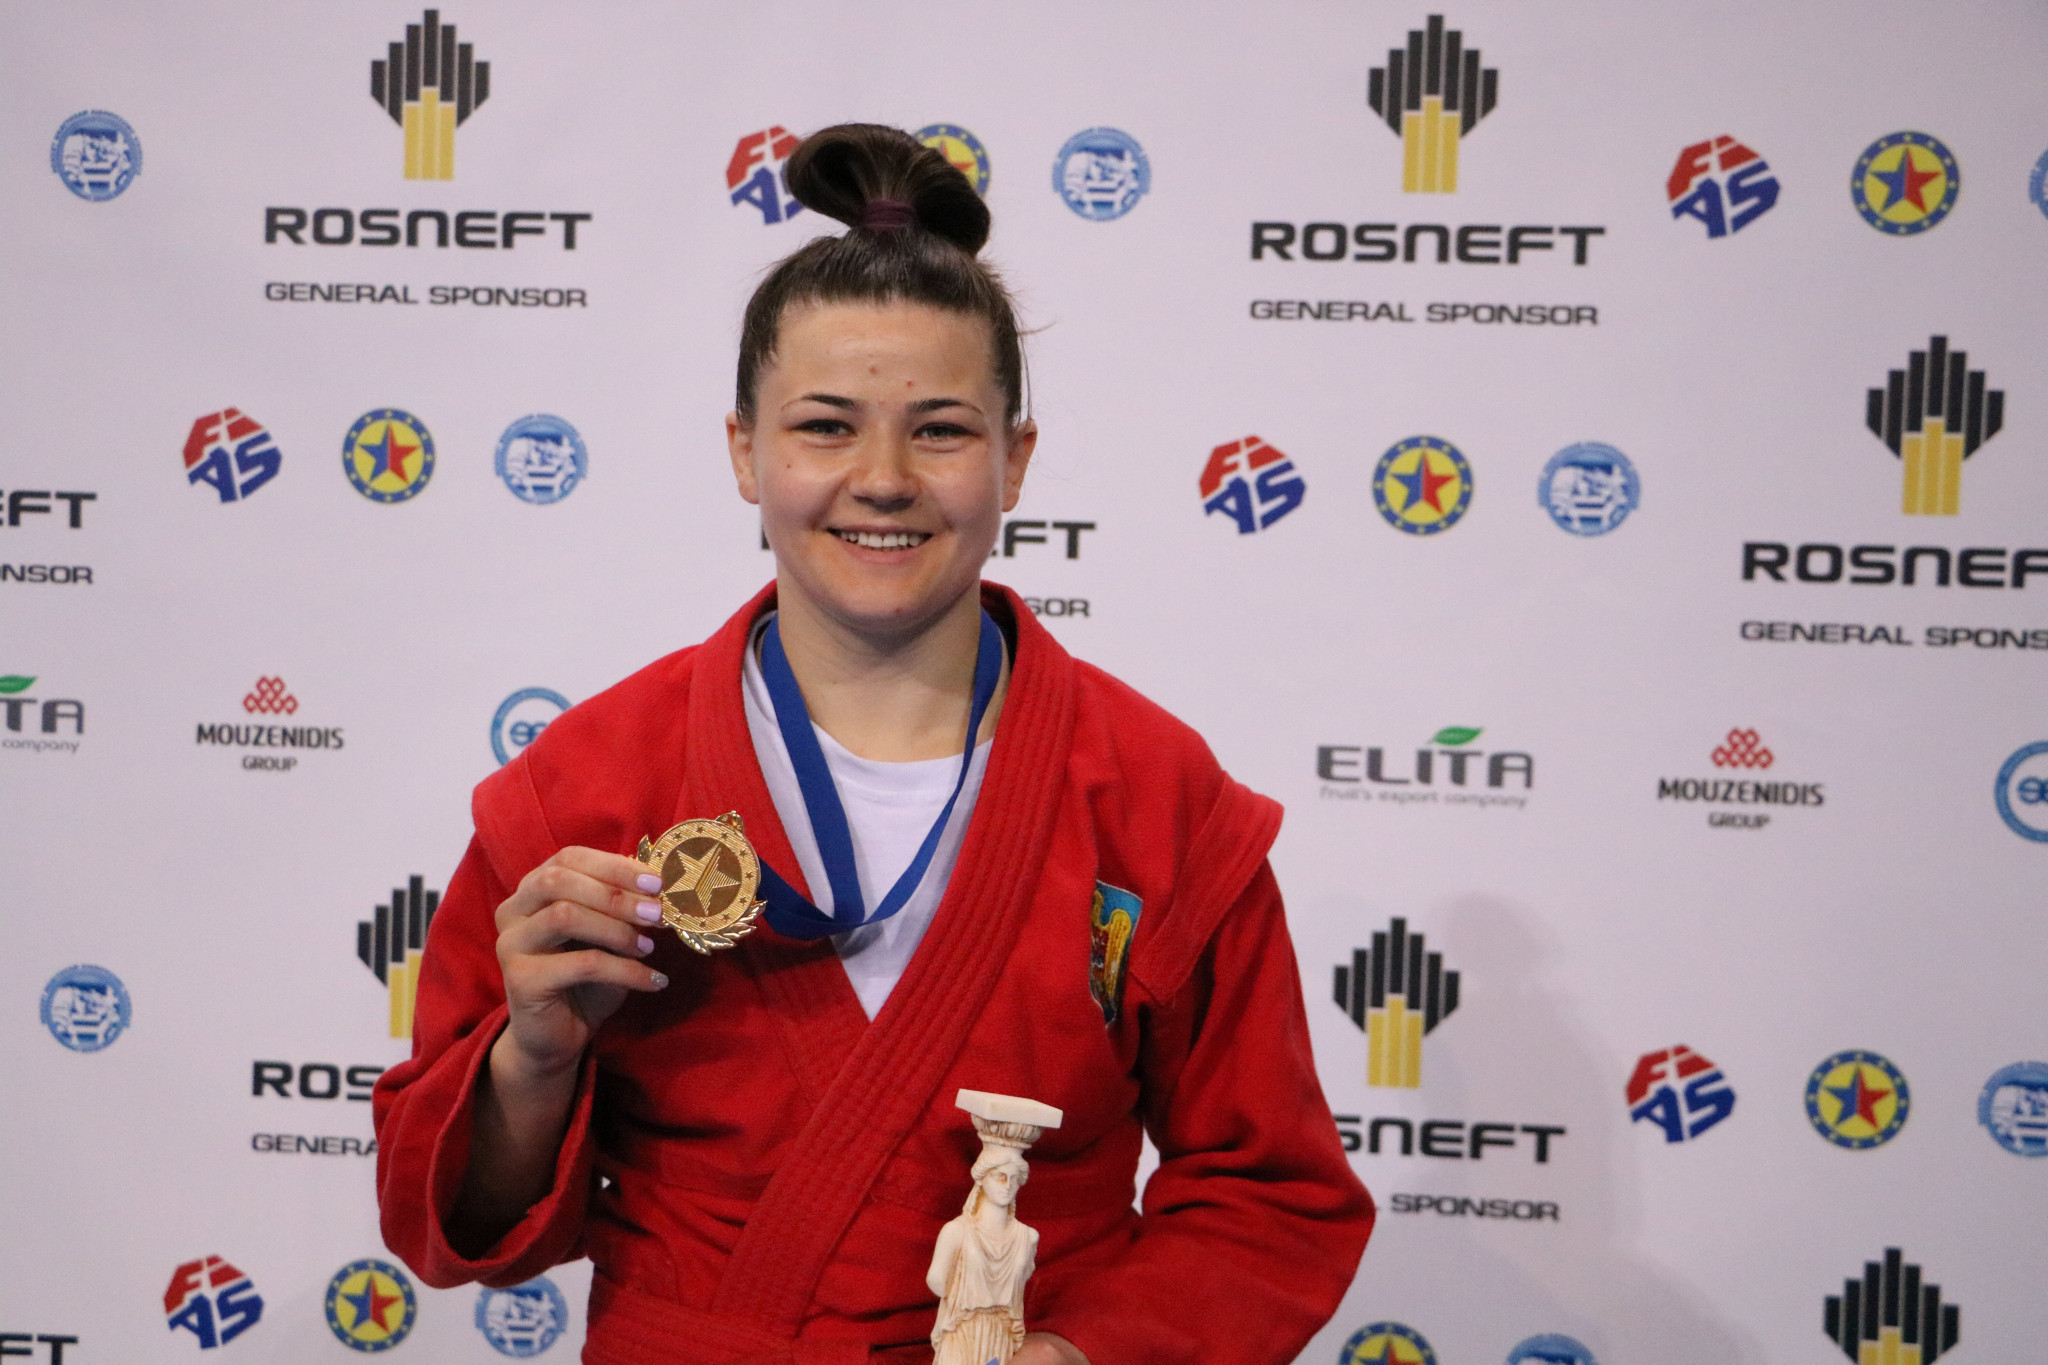 Moldova's Natalia Budeanu was the only athlete to beat a Russian in a final today, defeating Irina Gromova in the women's 68kg division ©FIAS